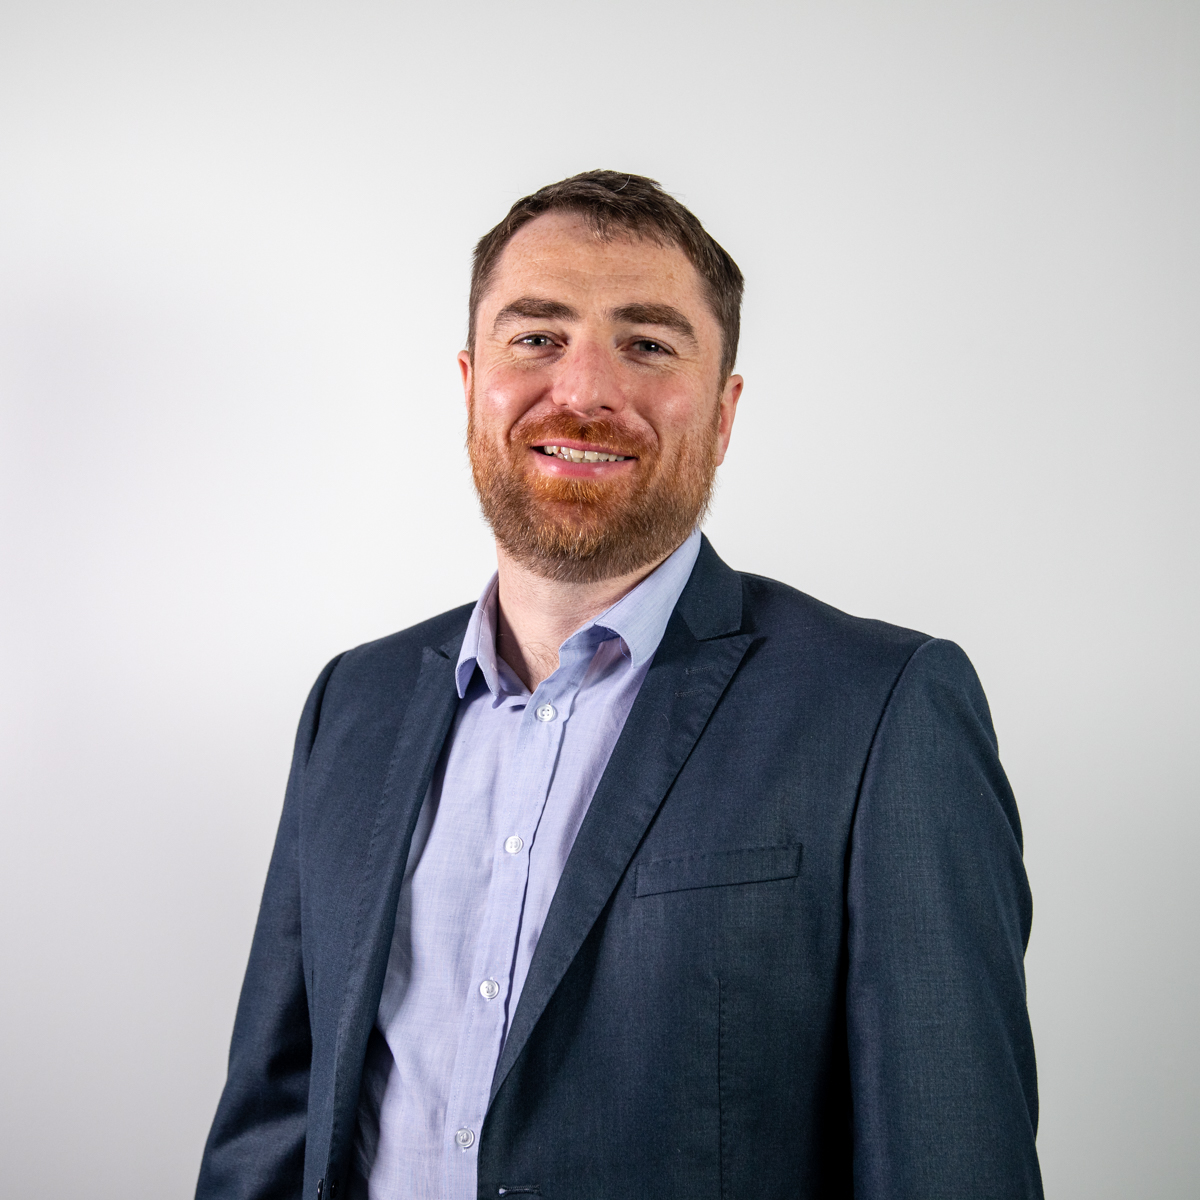 David Masterson - Development Lead